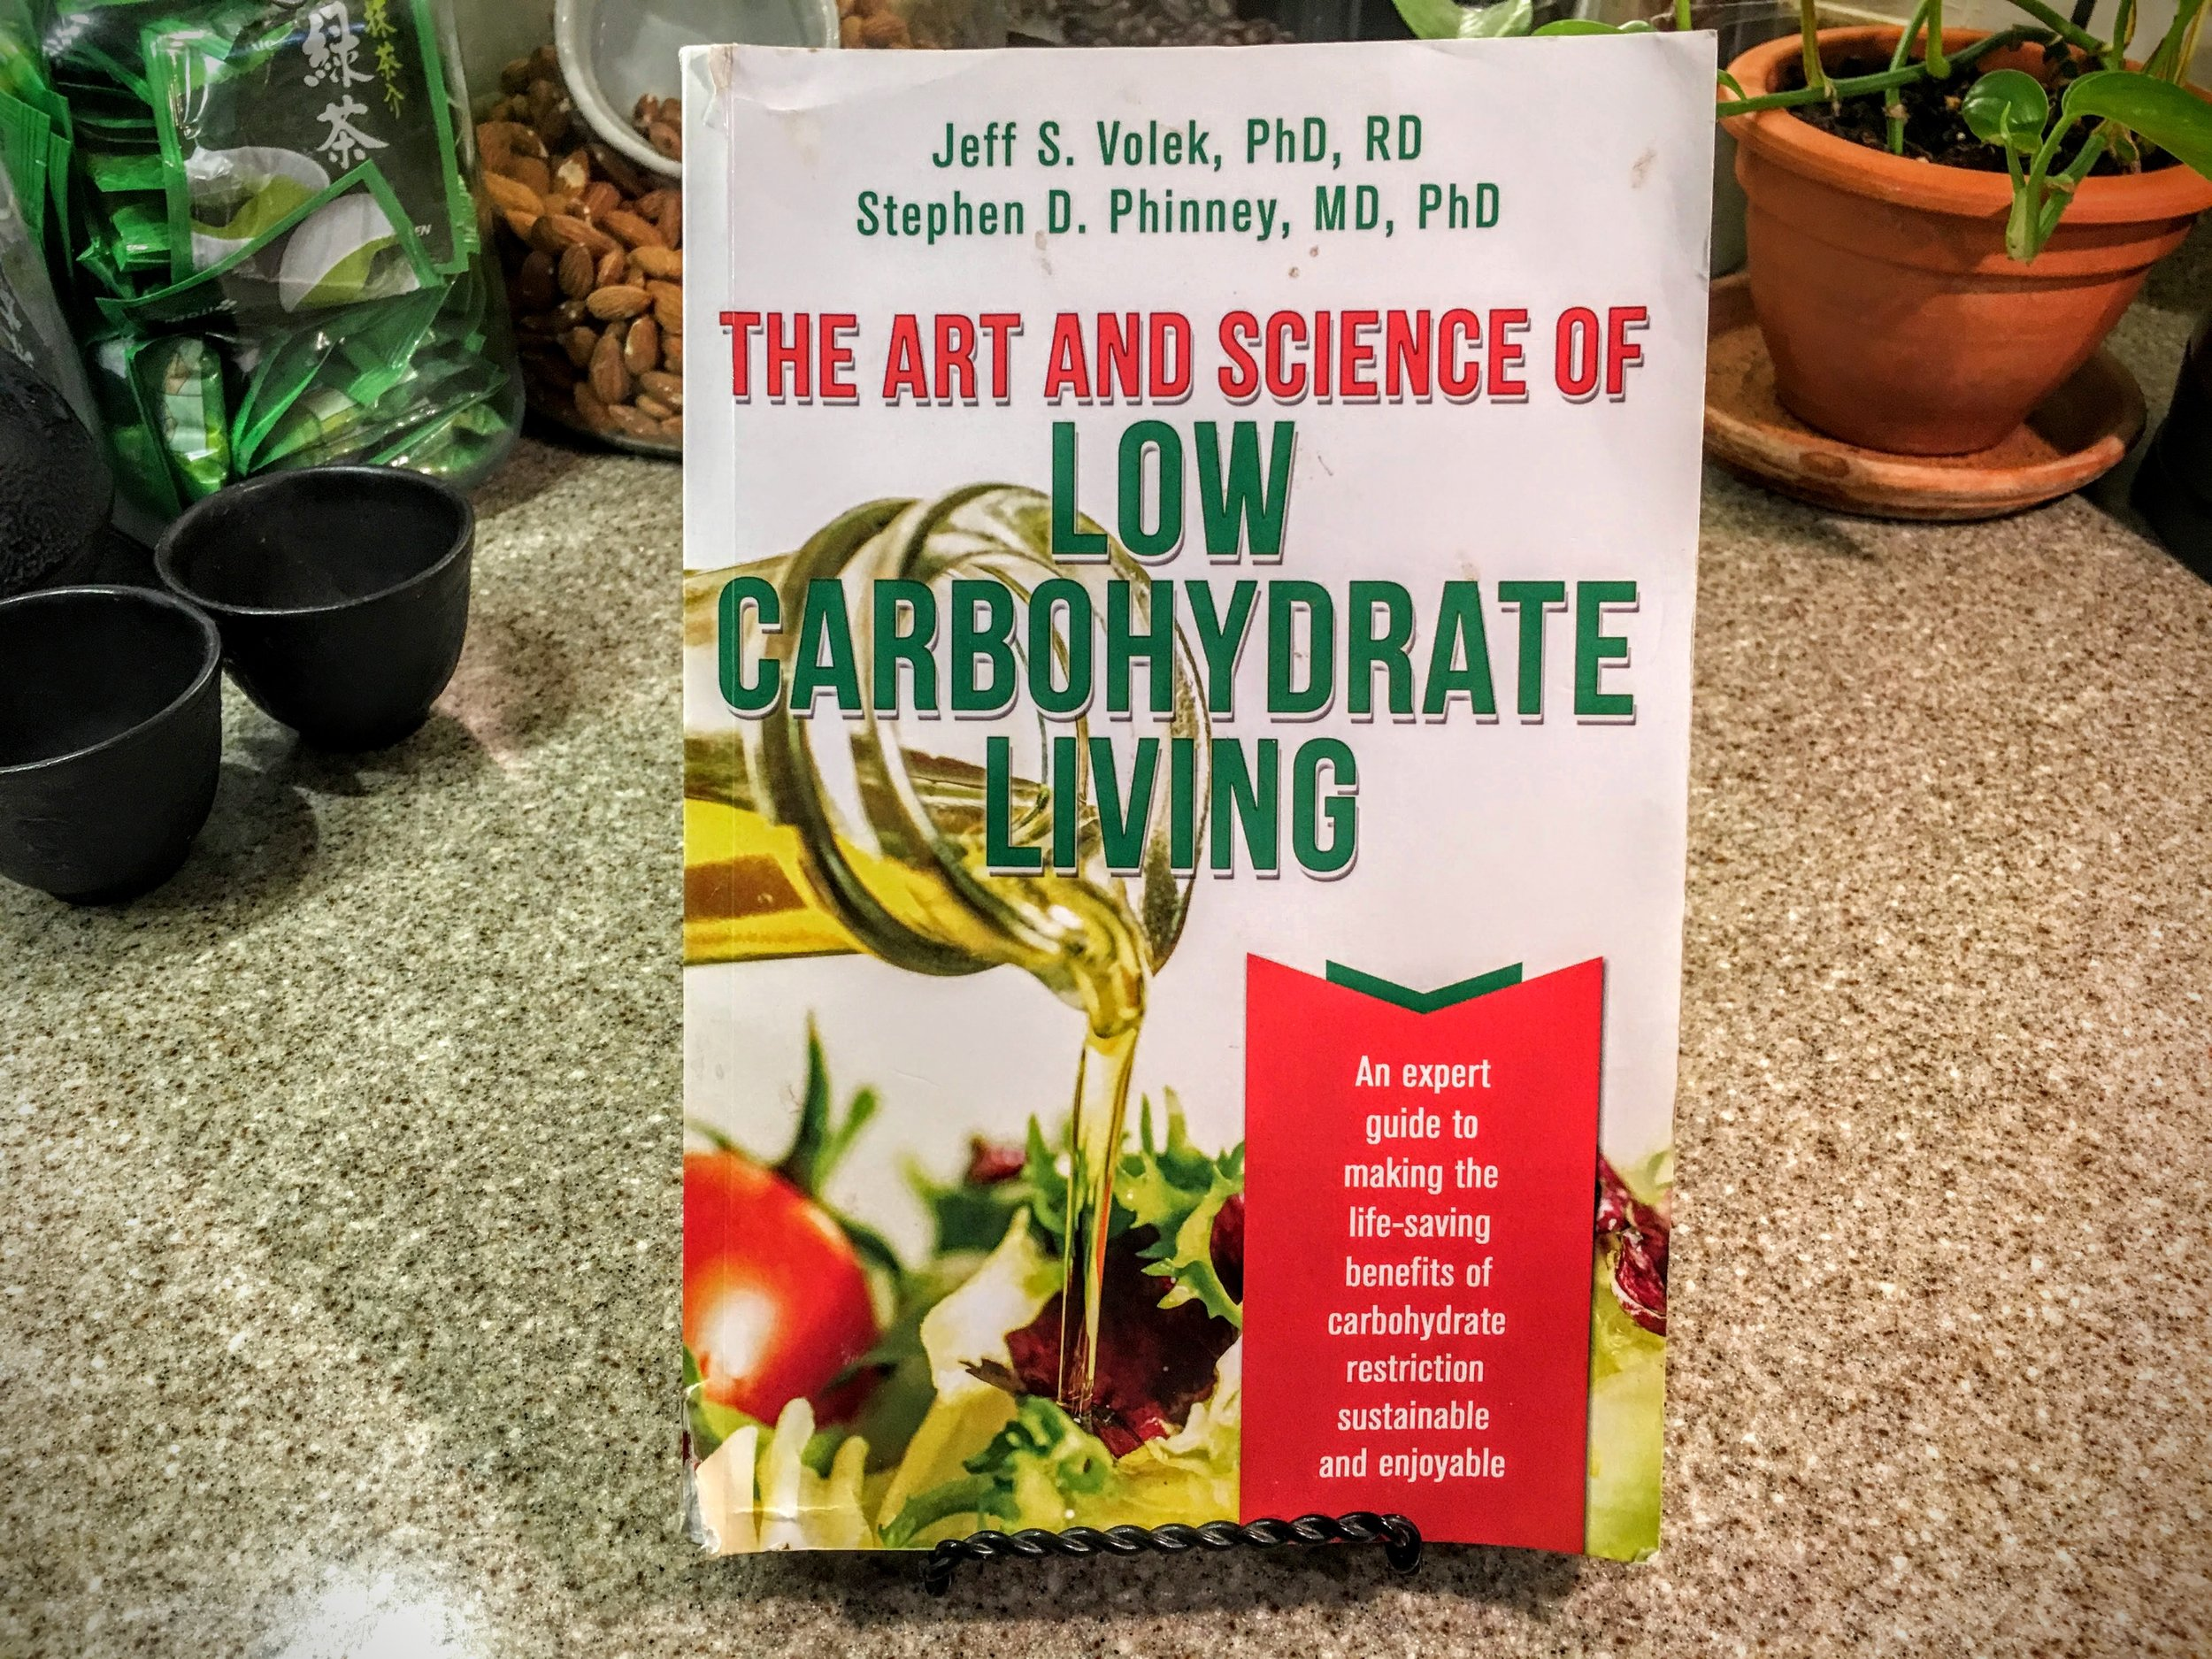 The art & science of low carbohydrate living   MY COPY OF THIS BOOK IS WELL THUMBED. I RETURN TO IT OFTEN, ALTHOUGH ORIGINALLY STARTED BY THE AUTHORS AS A BOOK FOR MEDICAL DOCTORS ABOUT THE LOW-CARB PROTOCOL, THEY REALIZED THAT IT WOULD BE VALUABLE TO MOTIVATED LAY PEOPLE WHO WANT TO BE WELL INFORMED. IT BREAKS THE SCIENCE DOWN INTO MANAGEABLE BITS.